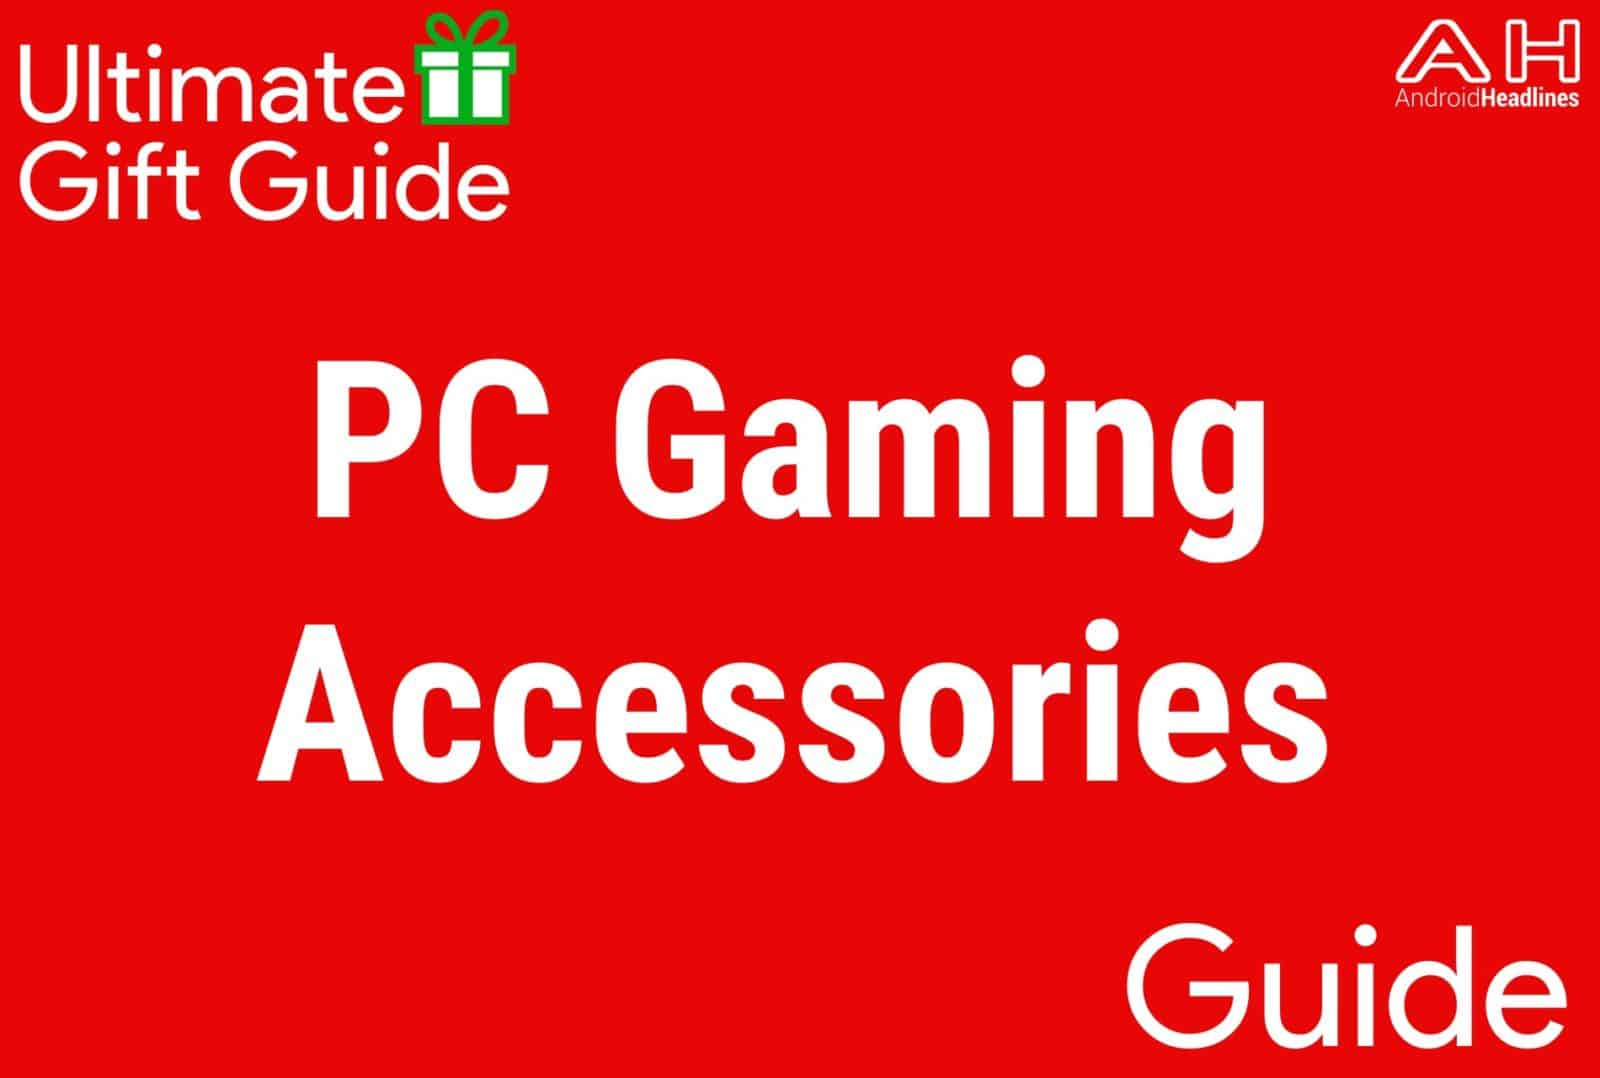 PC Gaming Accessories - Gift Guide 2015